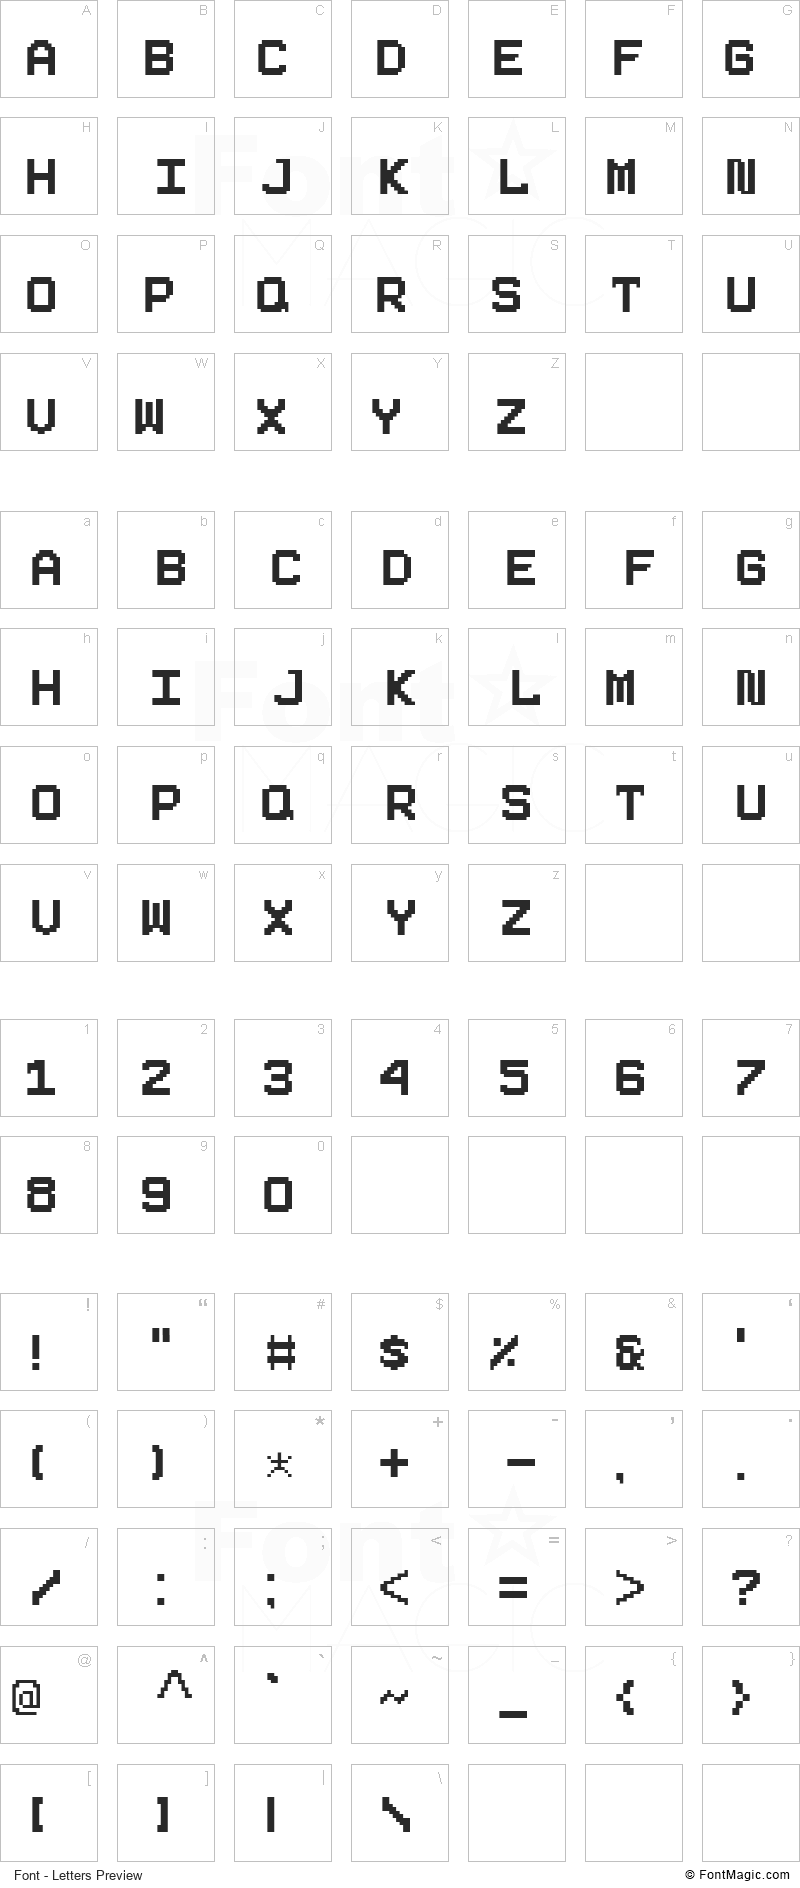 Pixeboy Font - All Latters Preview Chart